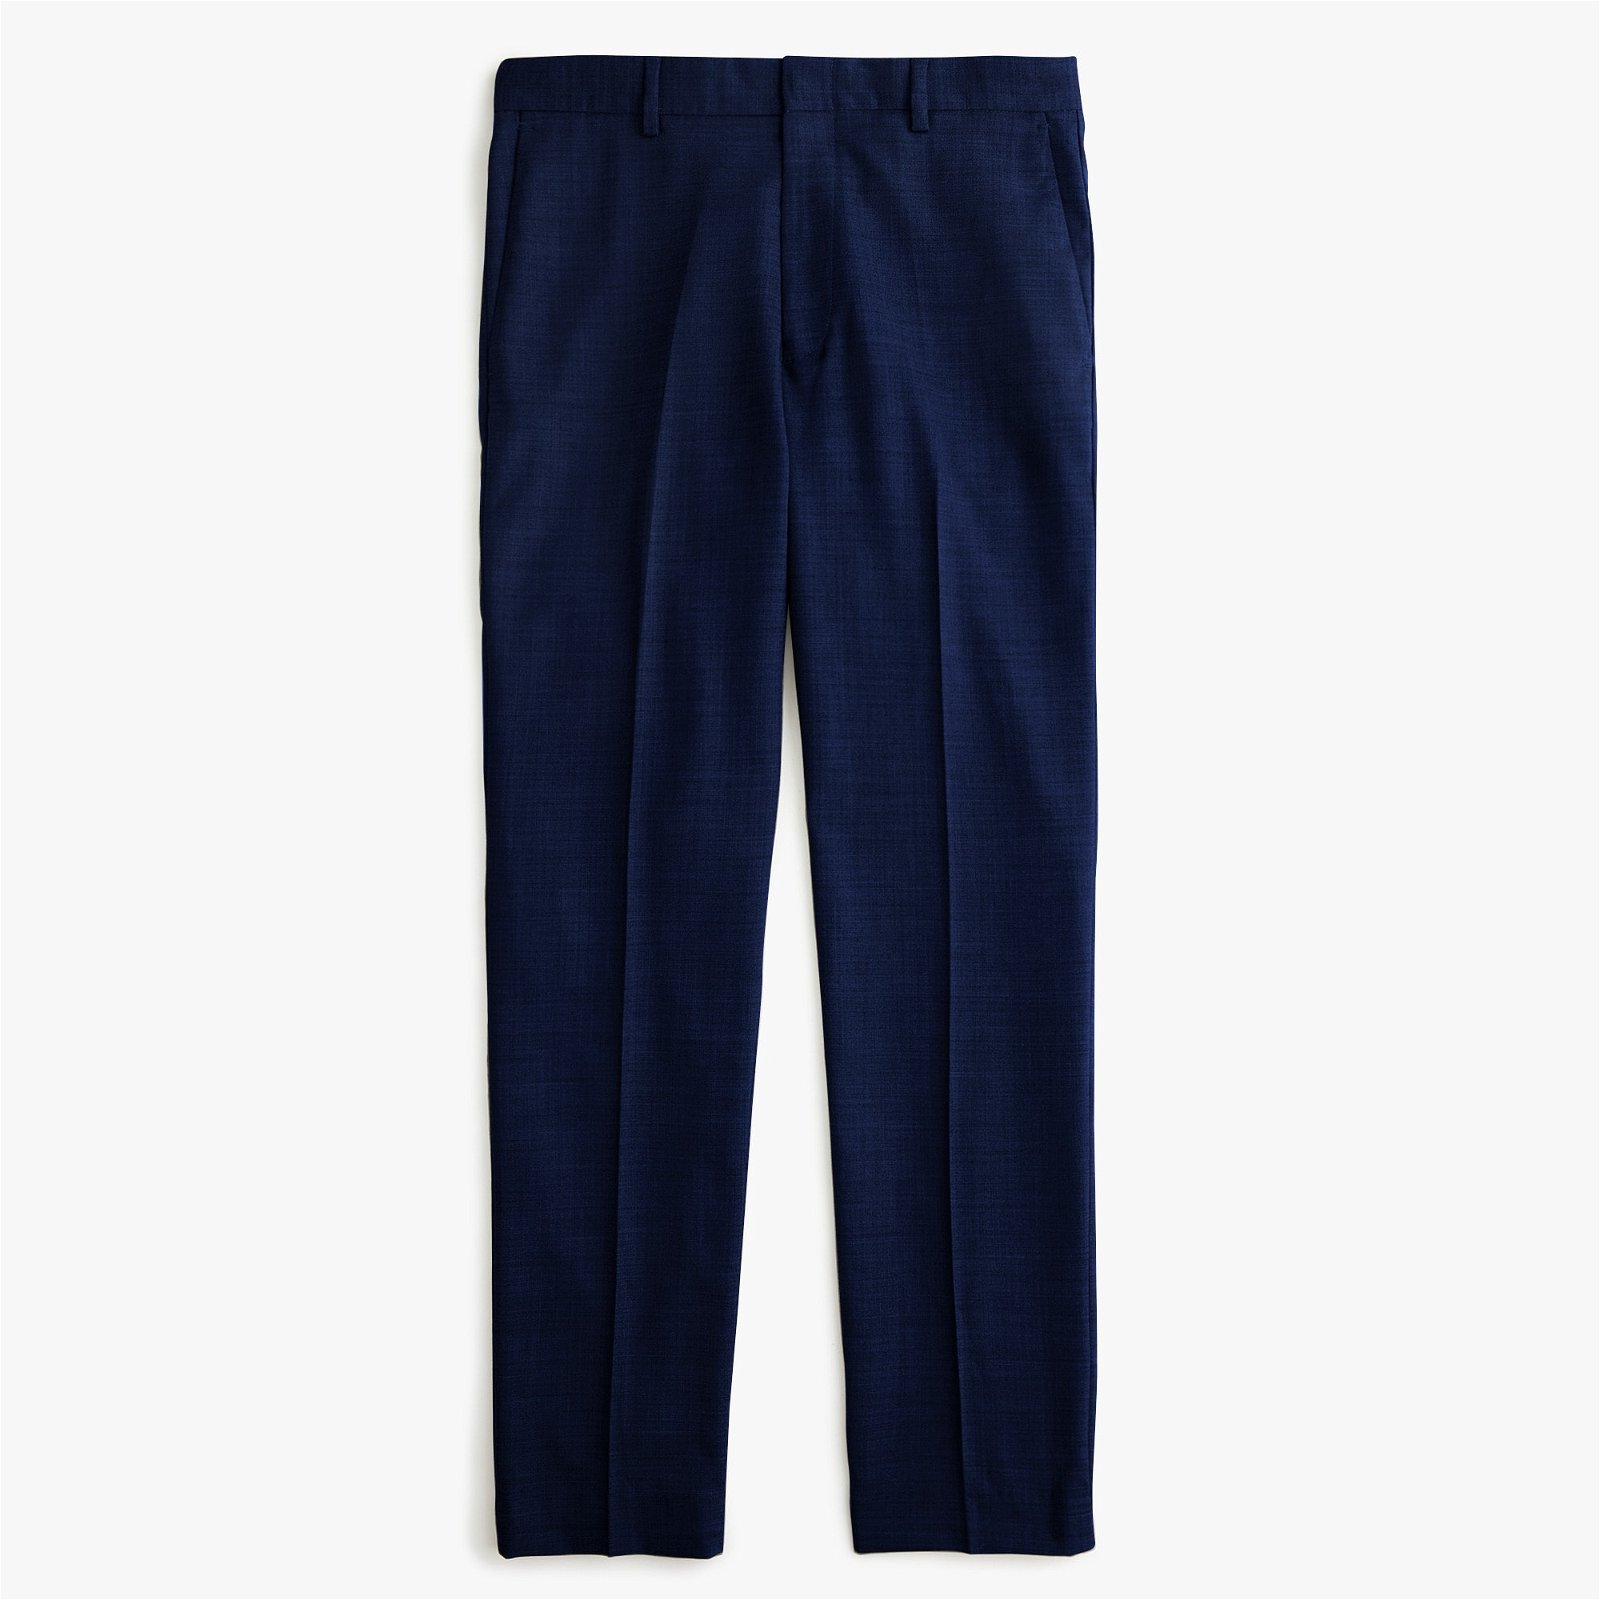 Ludlow Classic-fit pant in stretch four-season wool